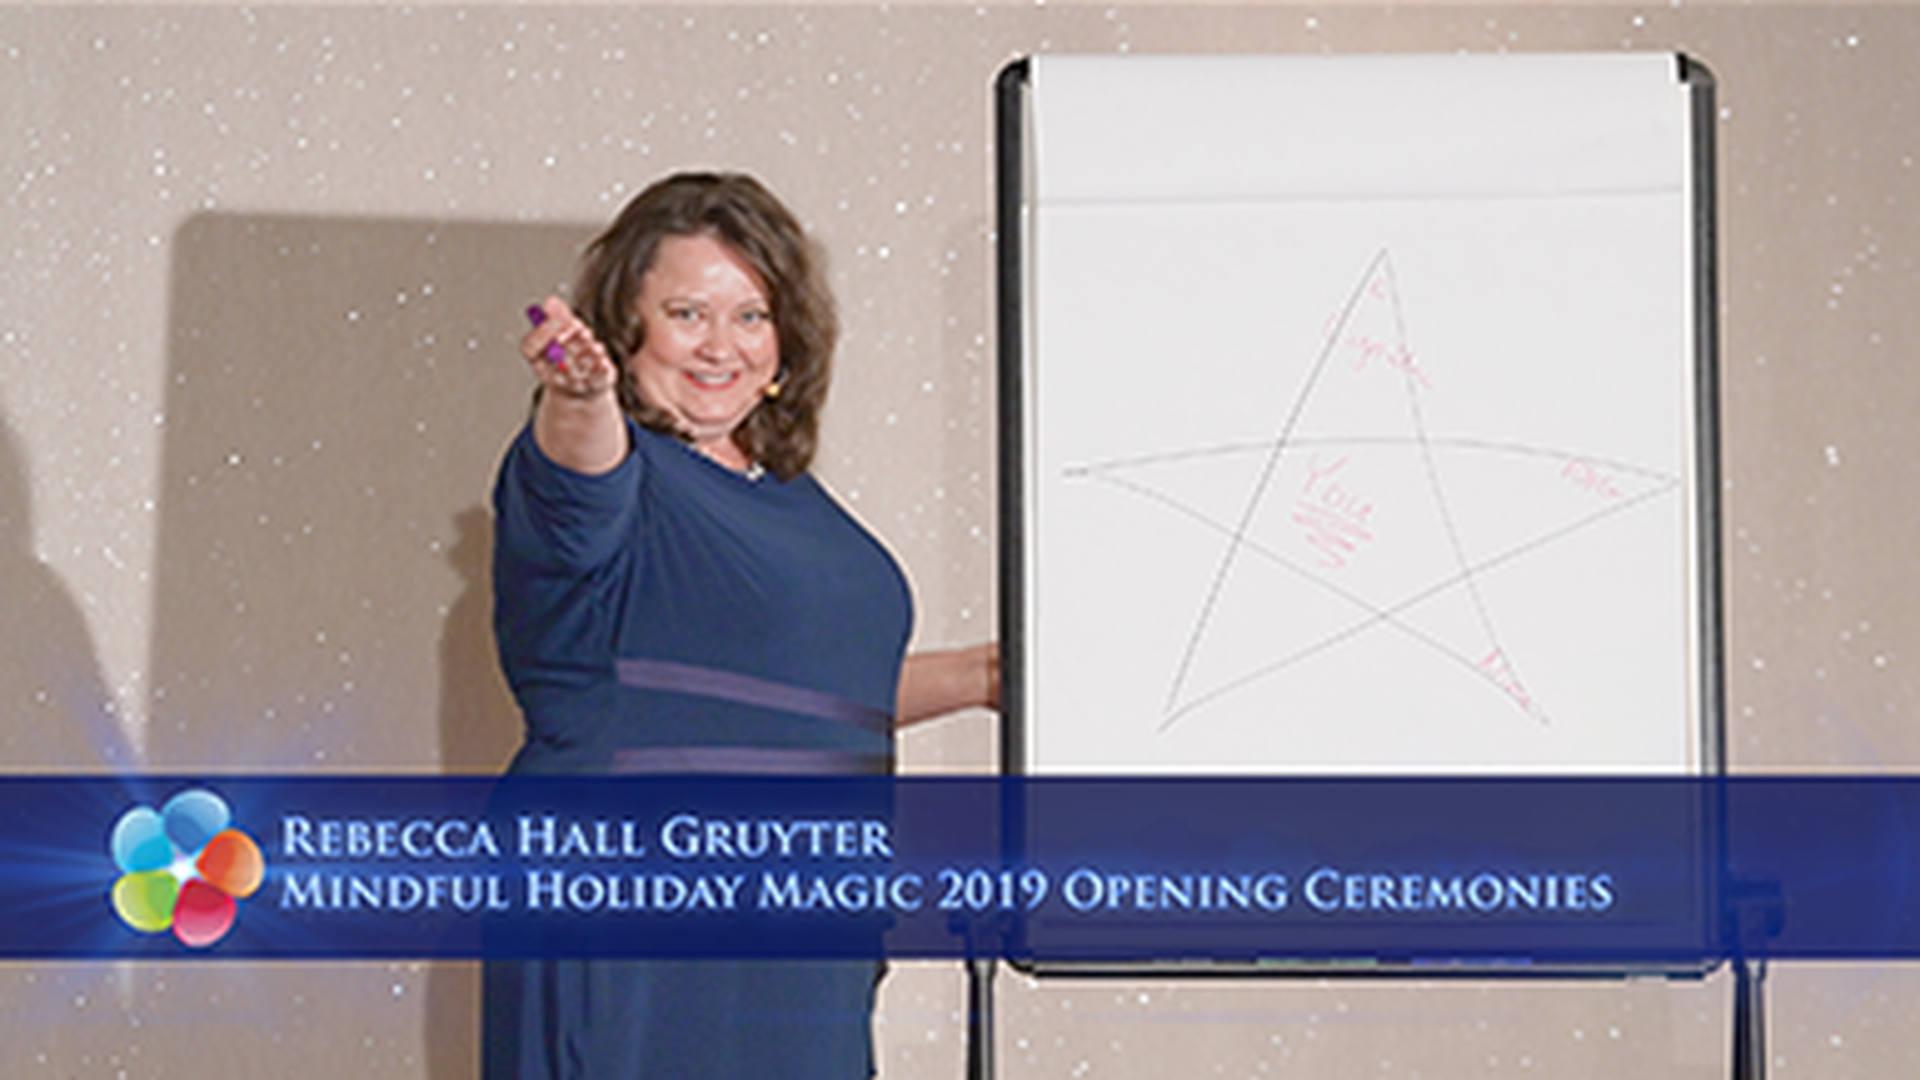 Mindful Holiday Magic 2019 Opening Ceremonies